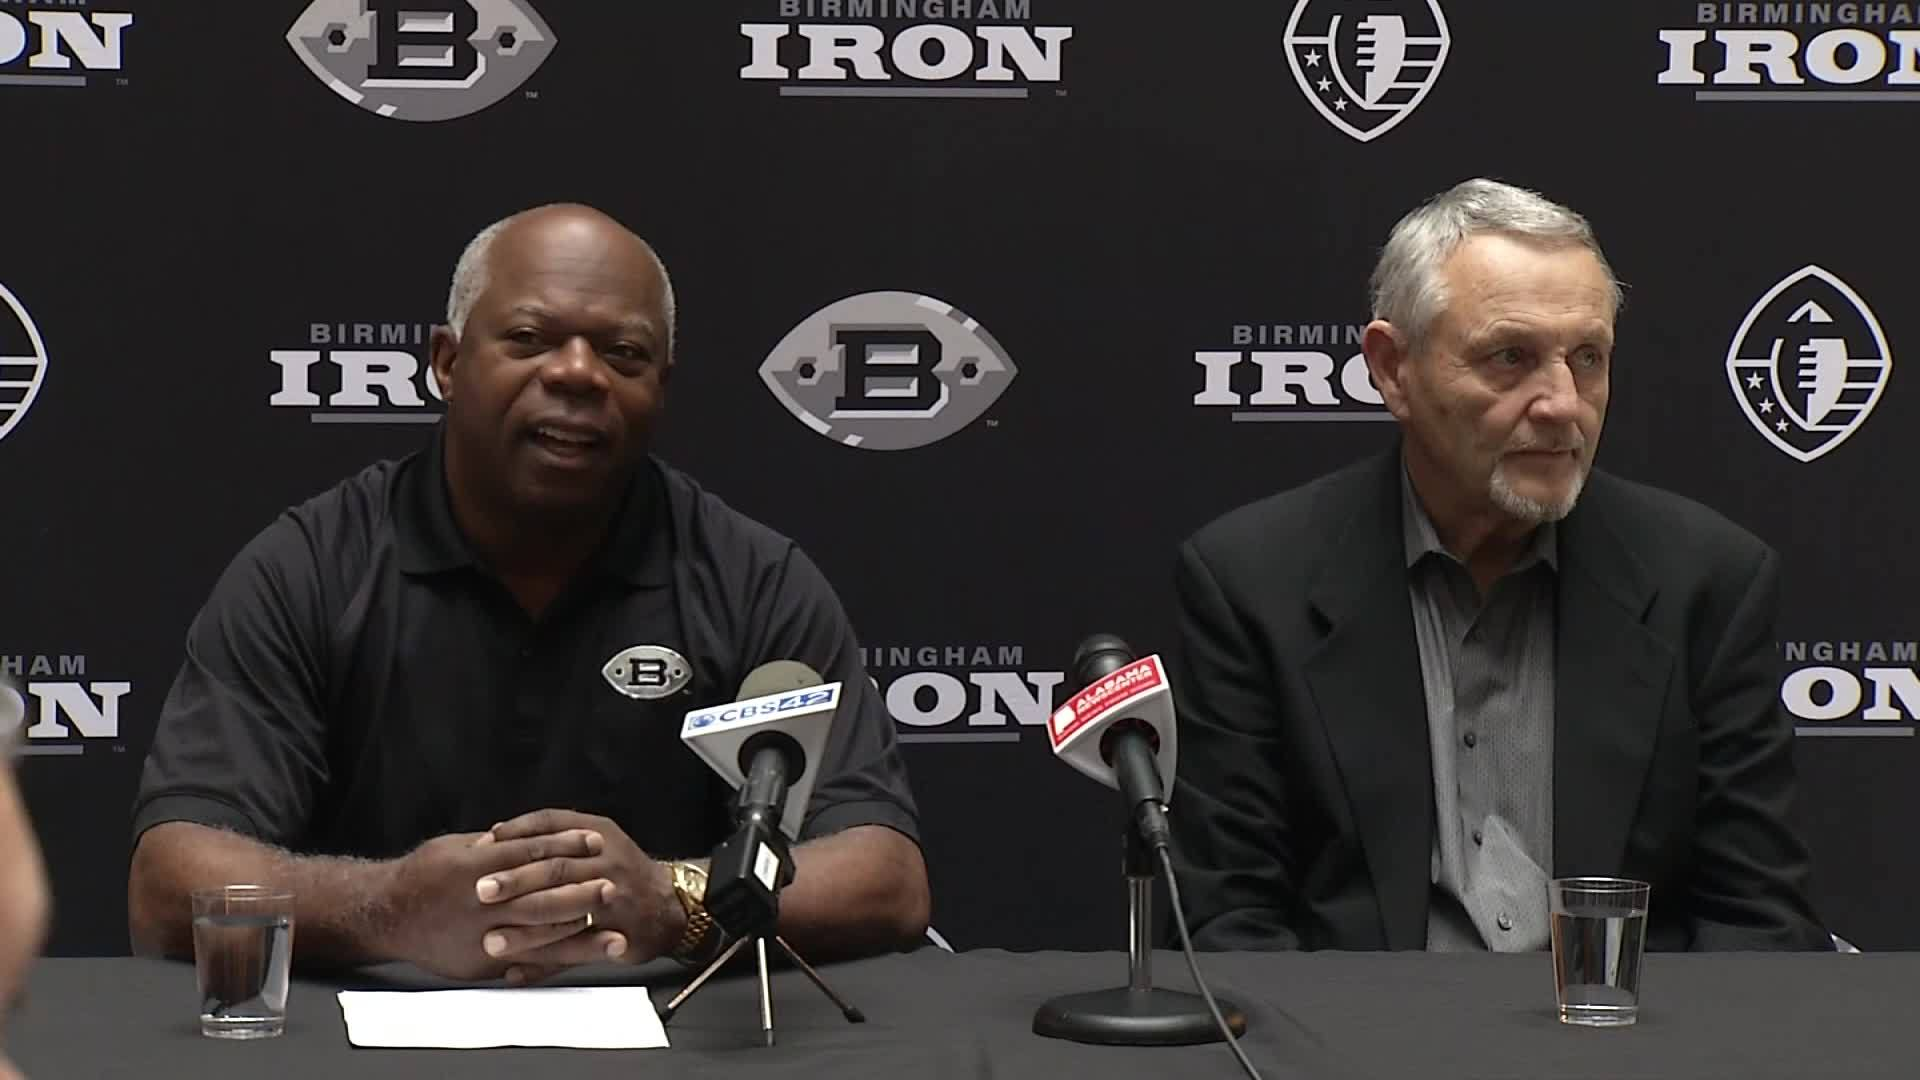 Birmingham Iron Announces Their Training Camp Days and Expectations for the Upcoming Season